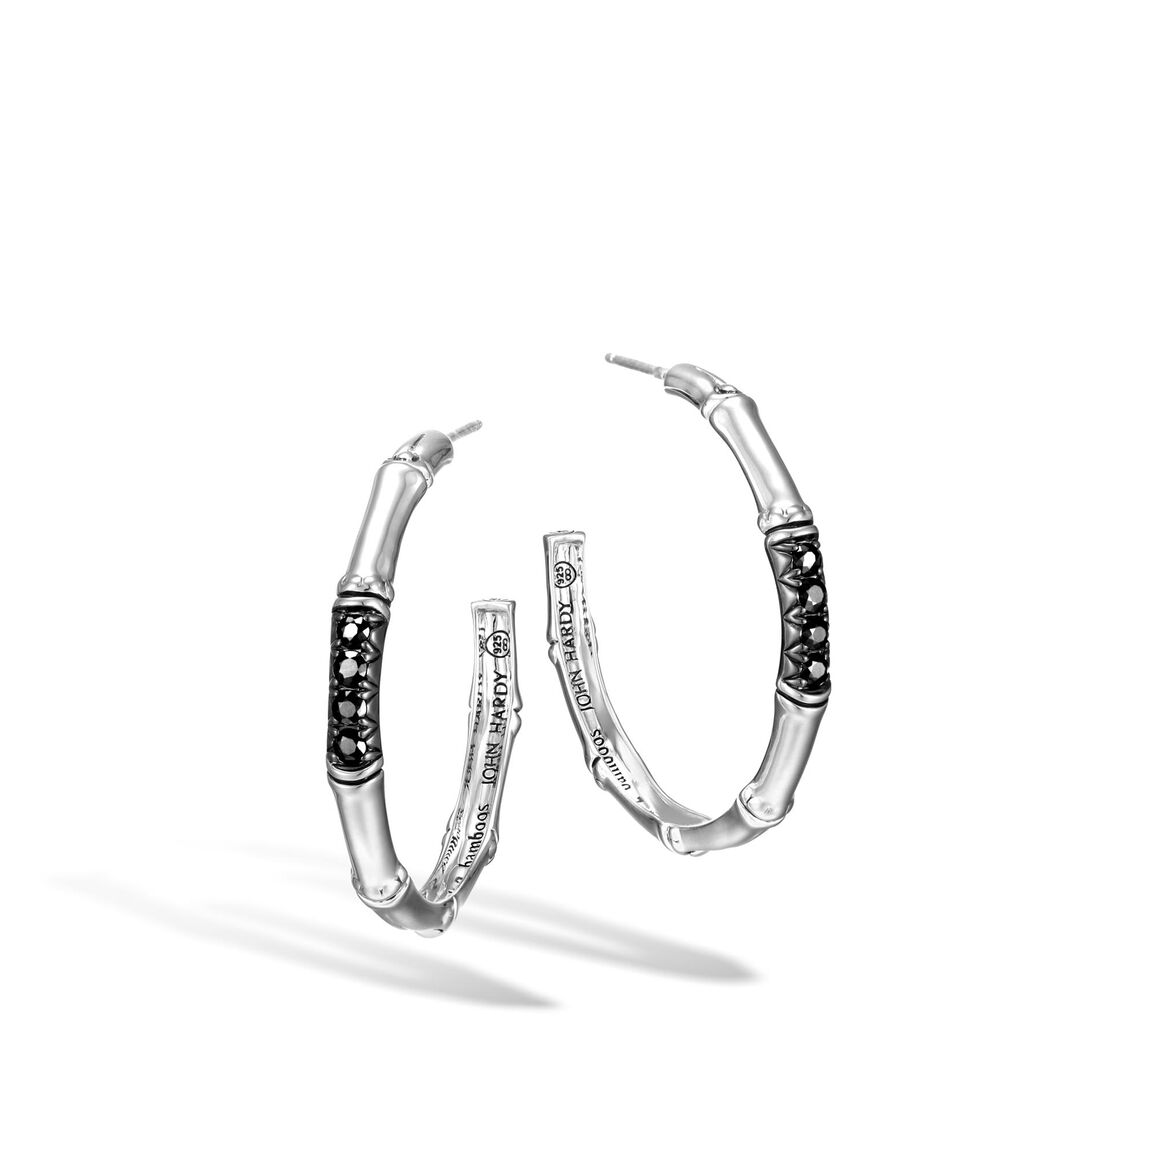 Bamboo Medium Hoop Earring in Silver with Gemstone